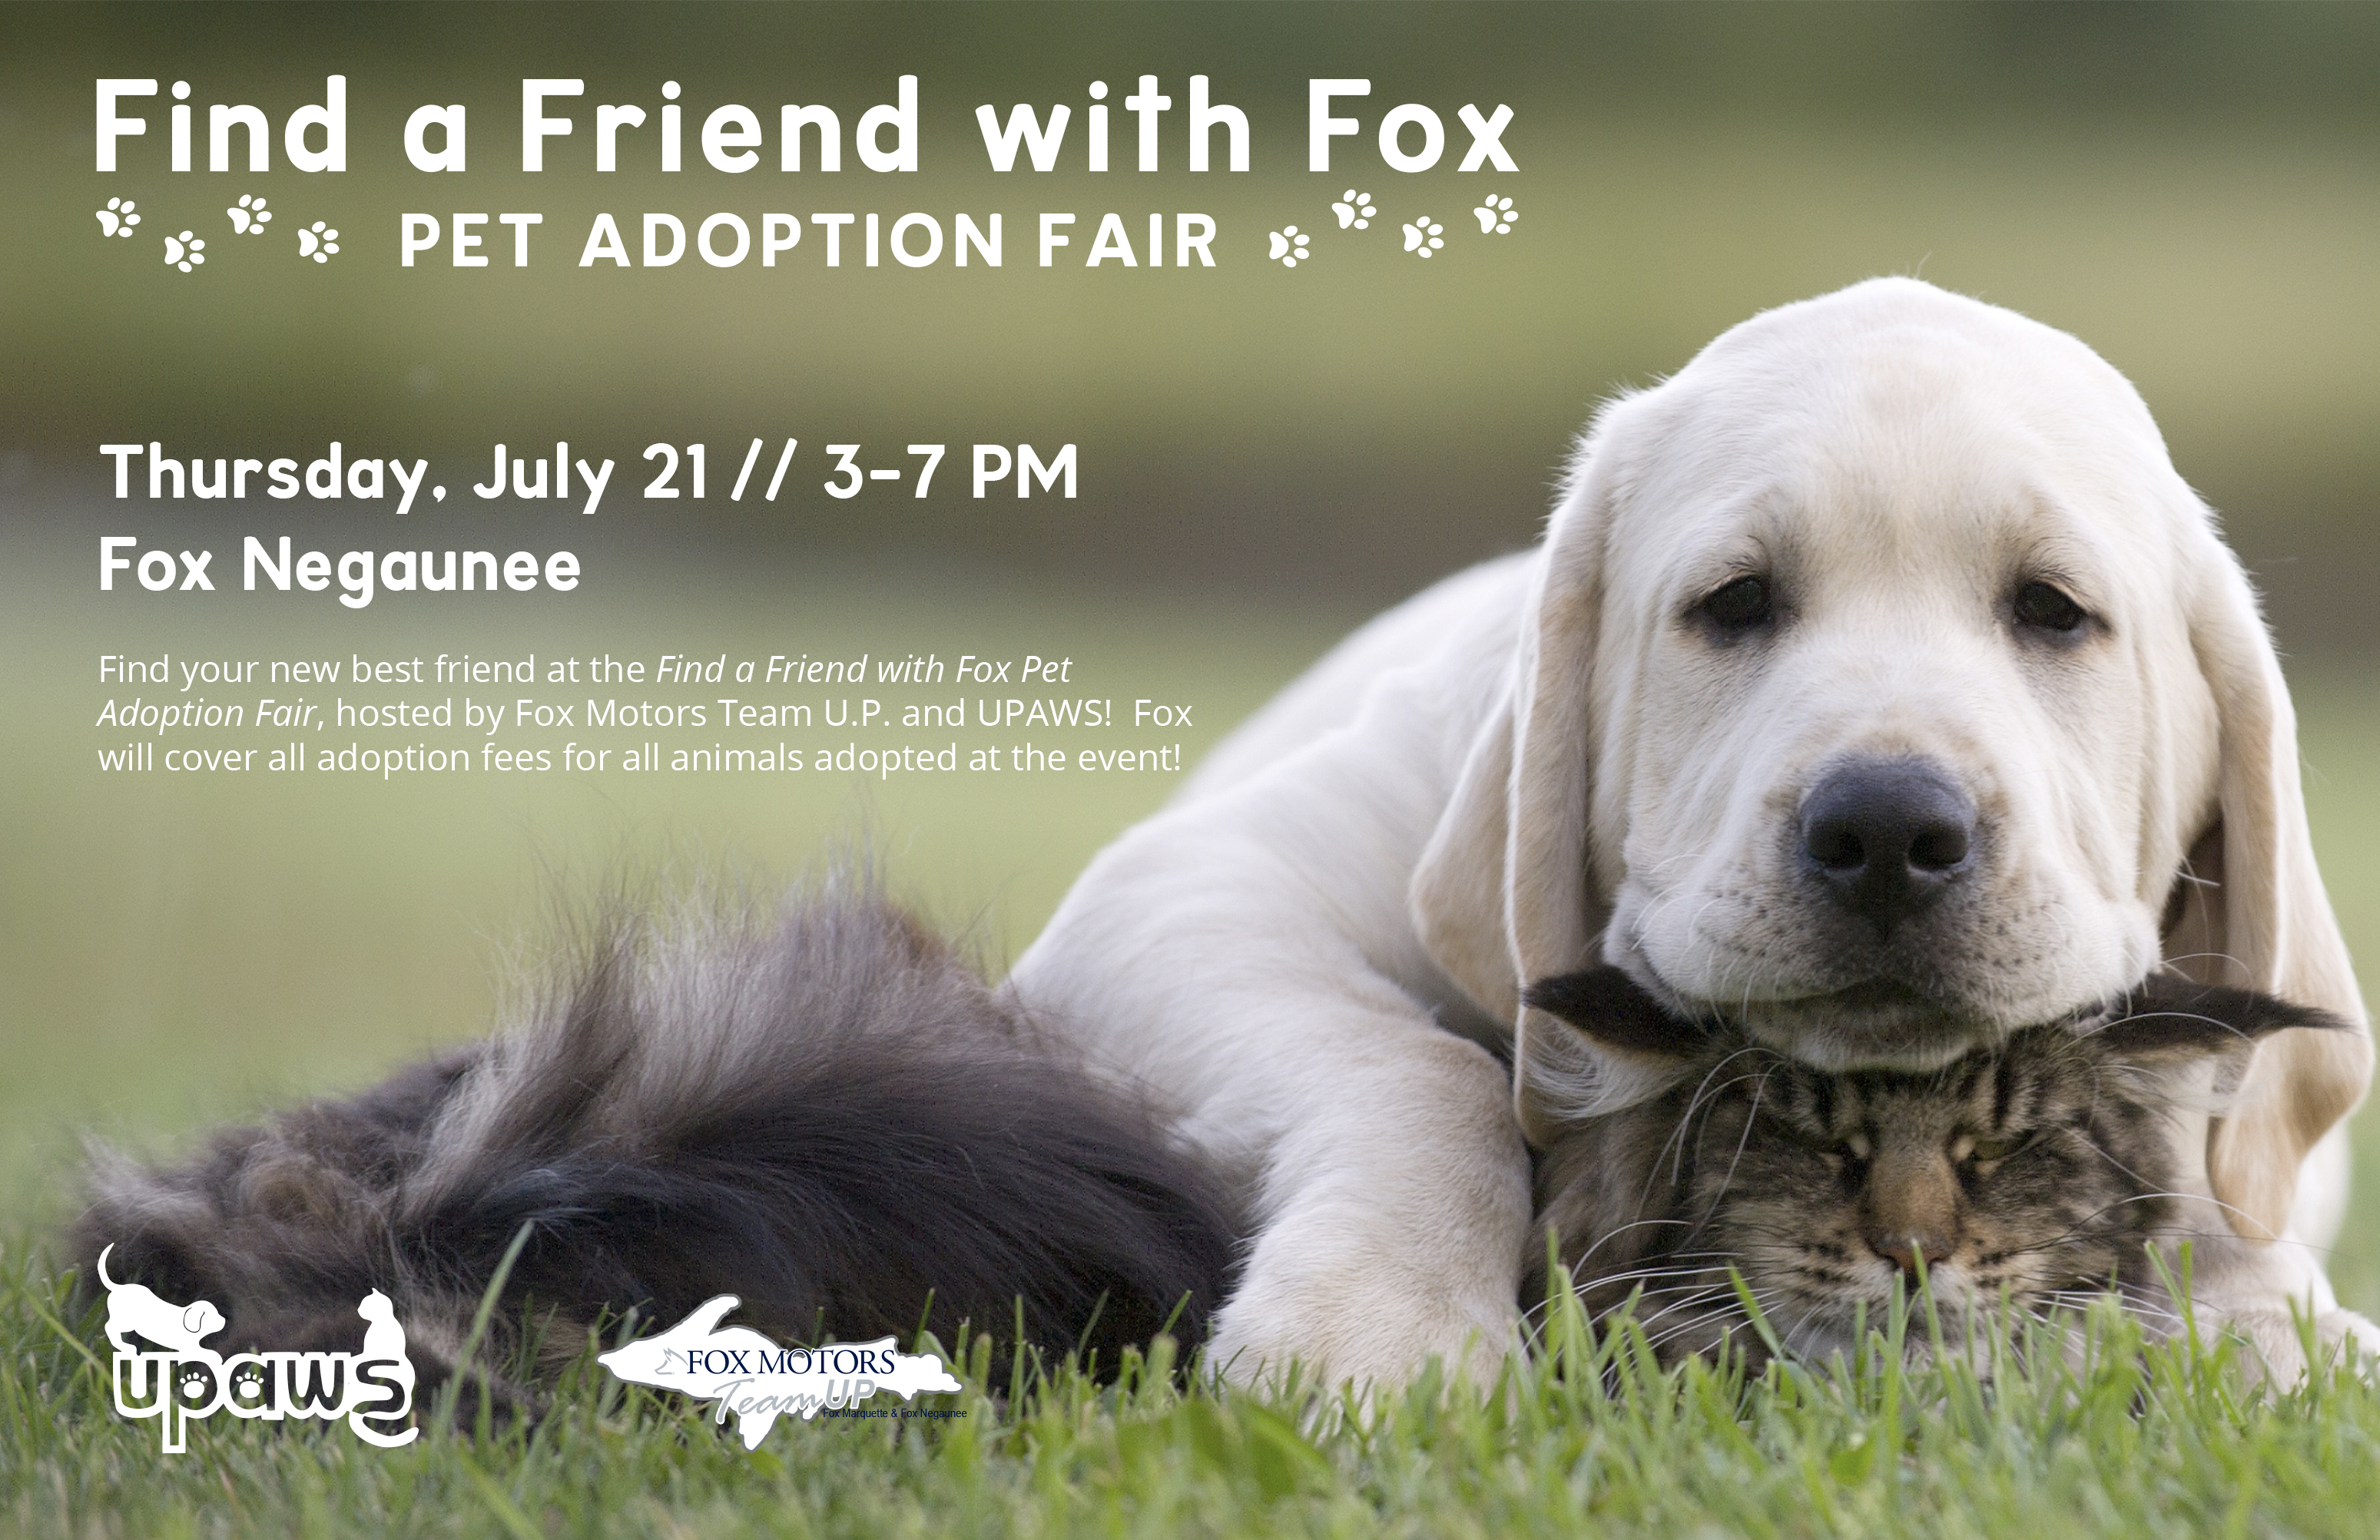 Find A Friend With Fox Pet Adoption Fair Is On July 21st